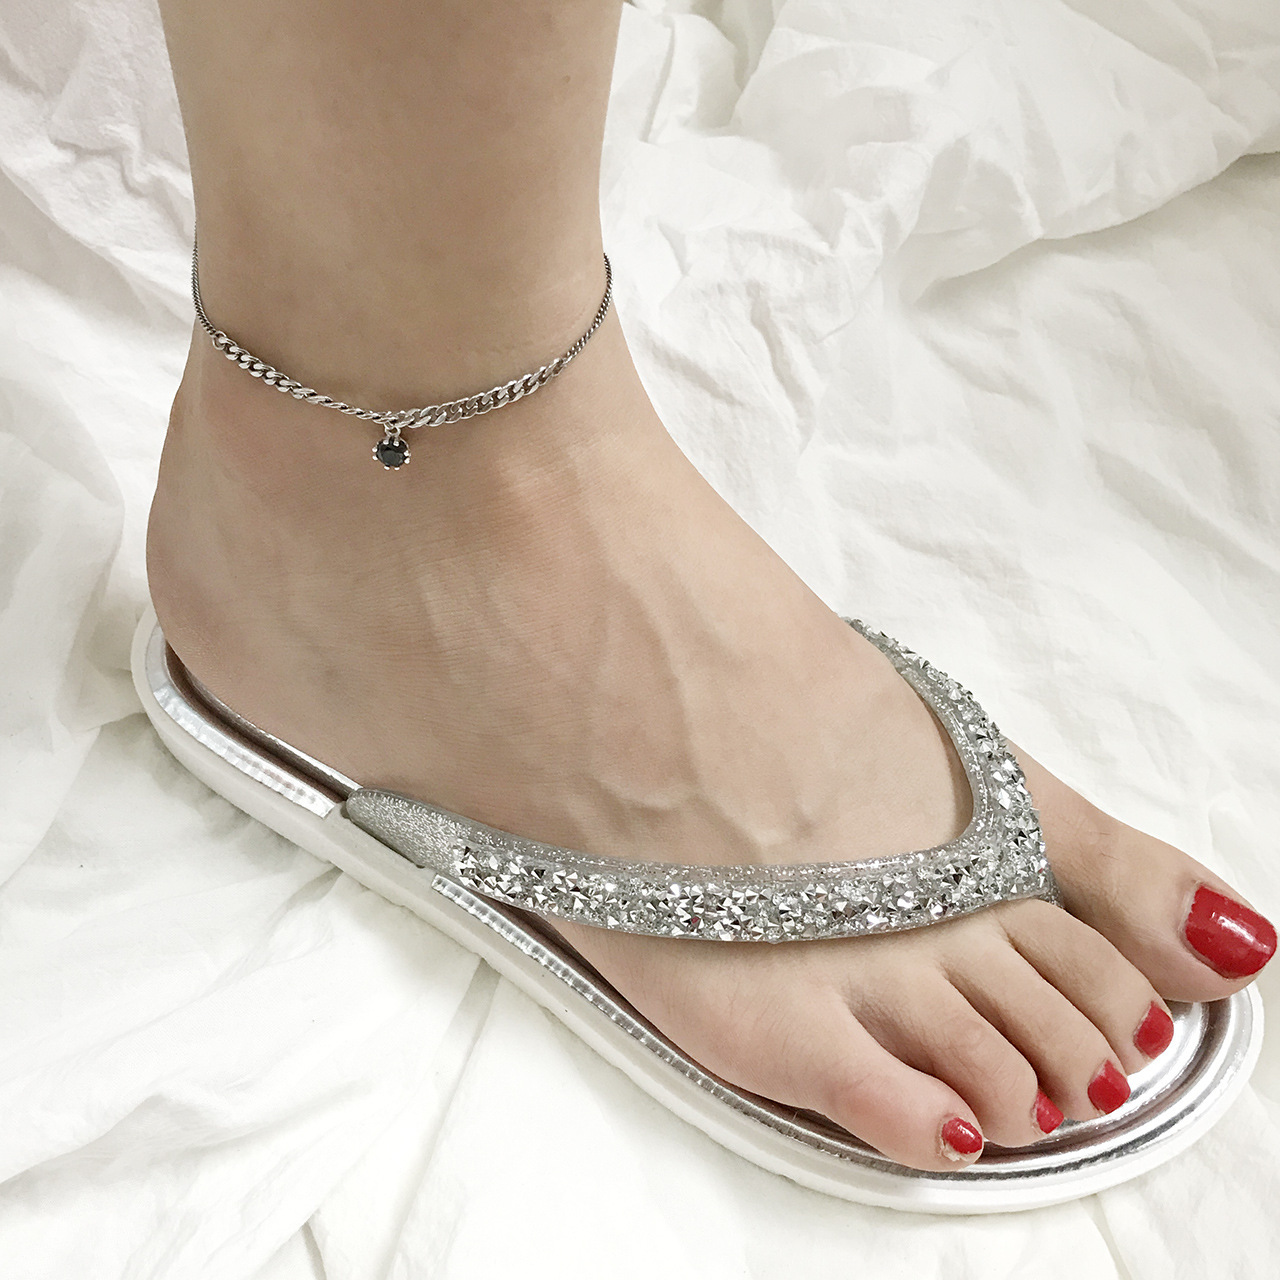 Original personality South Korean S925 pure silver retro Thai silver inlaid with zircon foot chain twist chain modeling foot chain